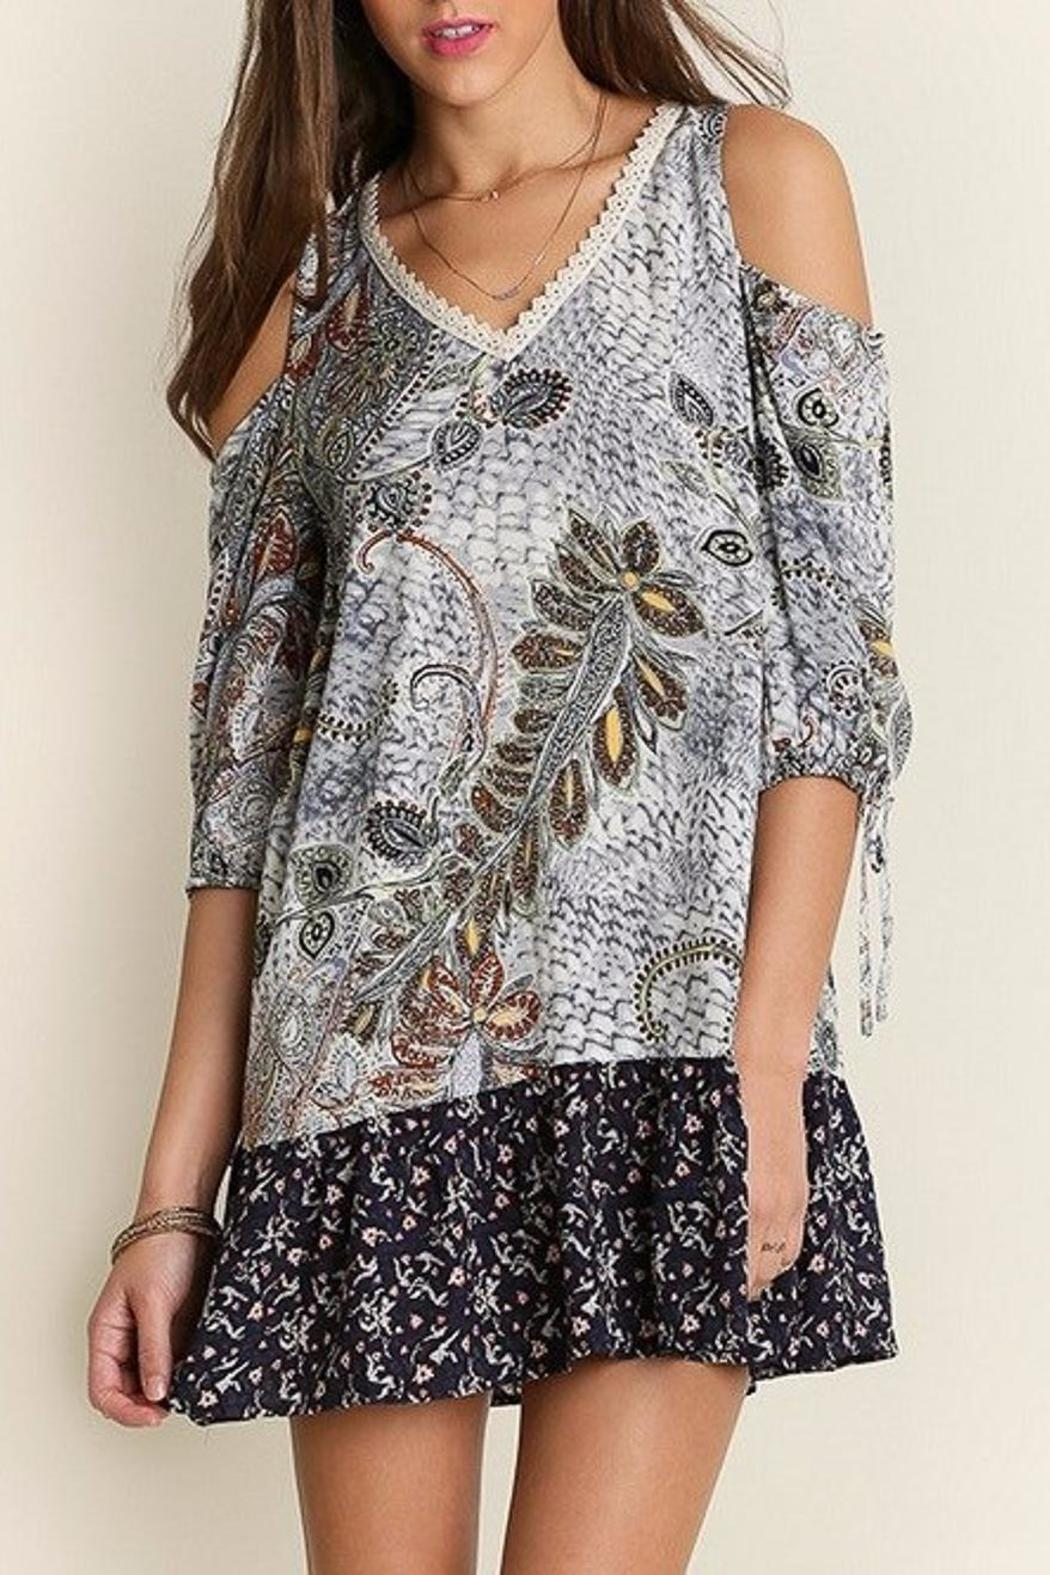 People Outfitter Perfect Print Dress - Main Image